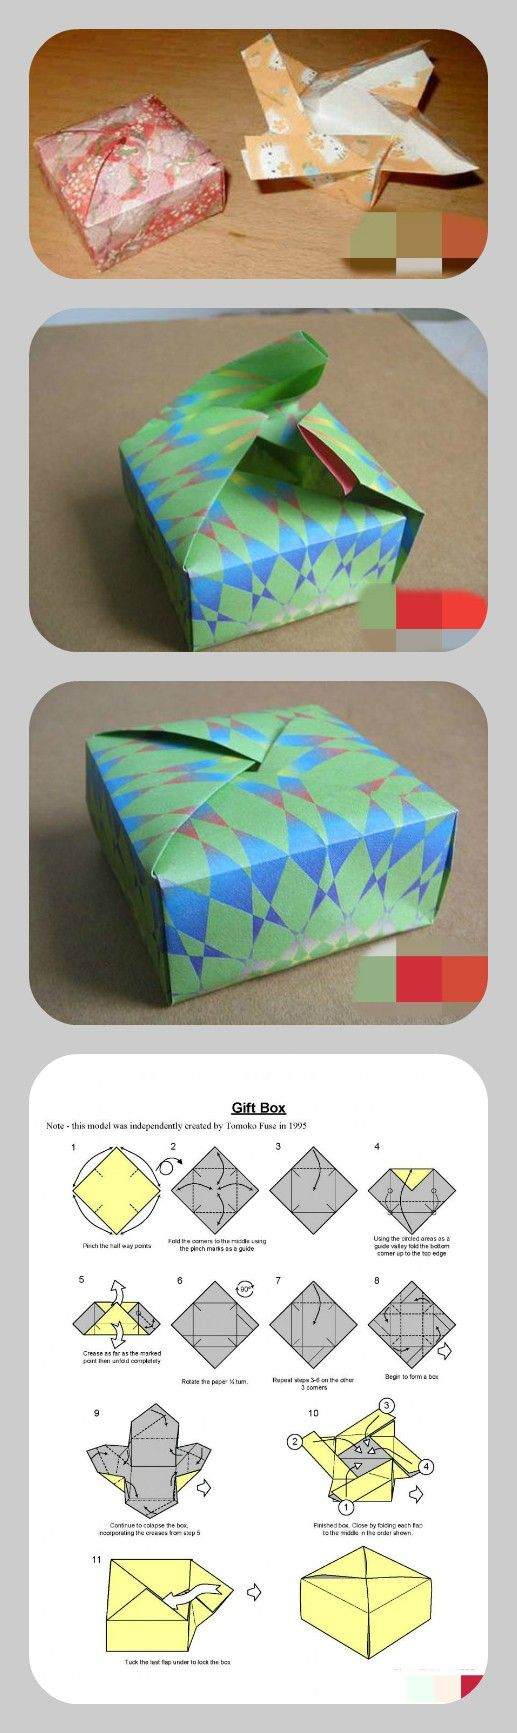 Decorative Boxes Templates : Box templates to print for gift boxes wedding